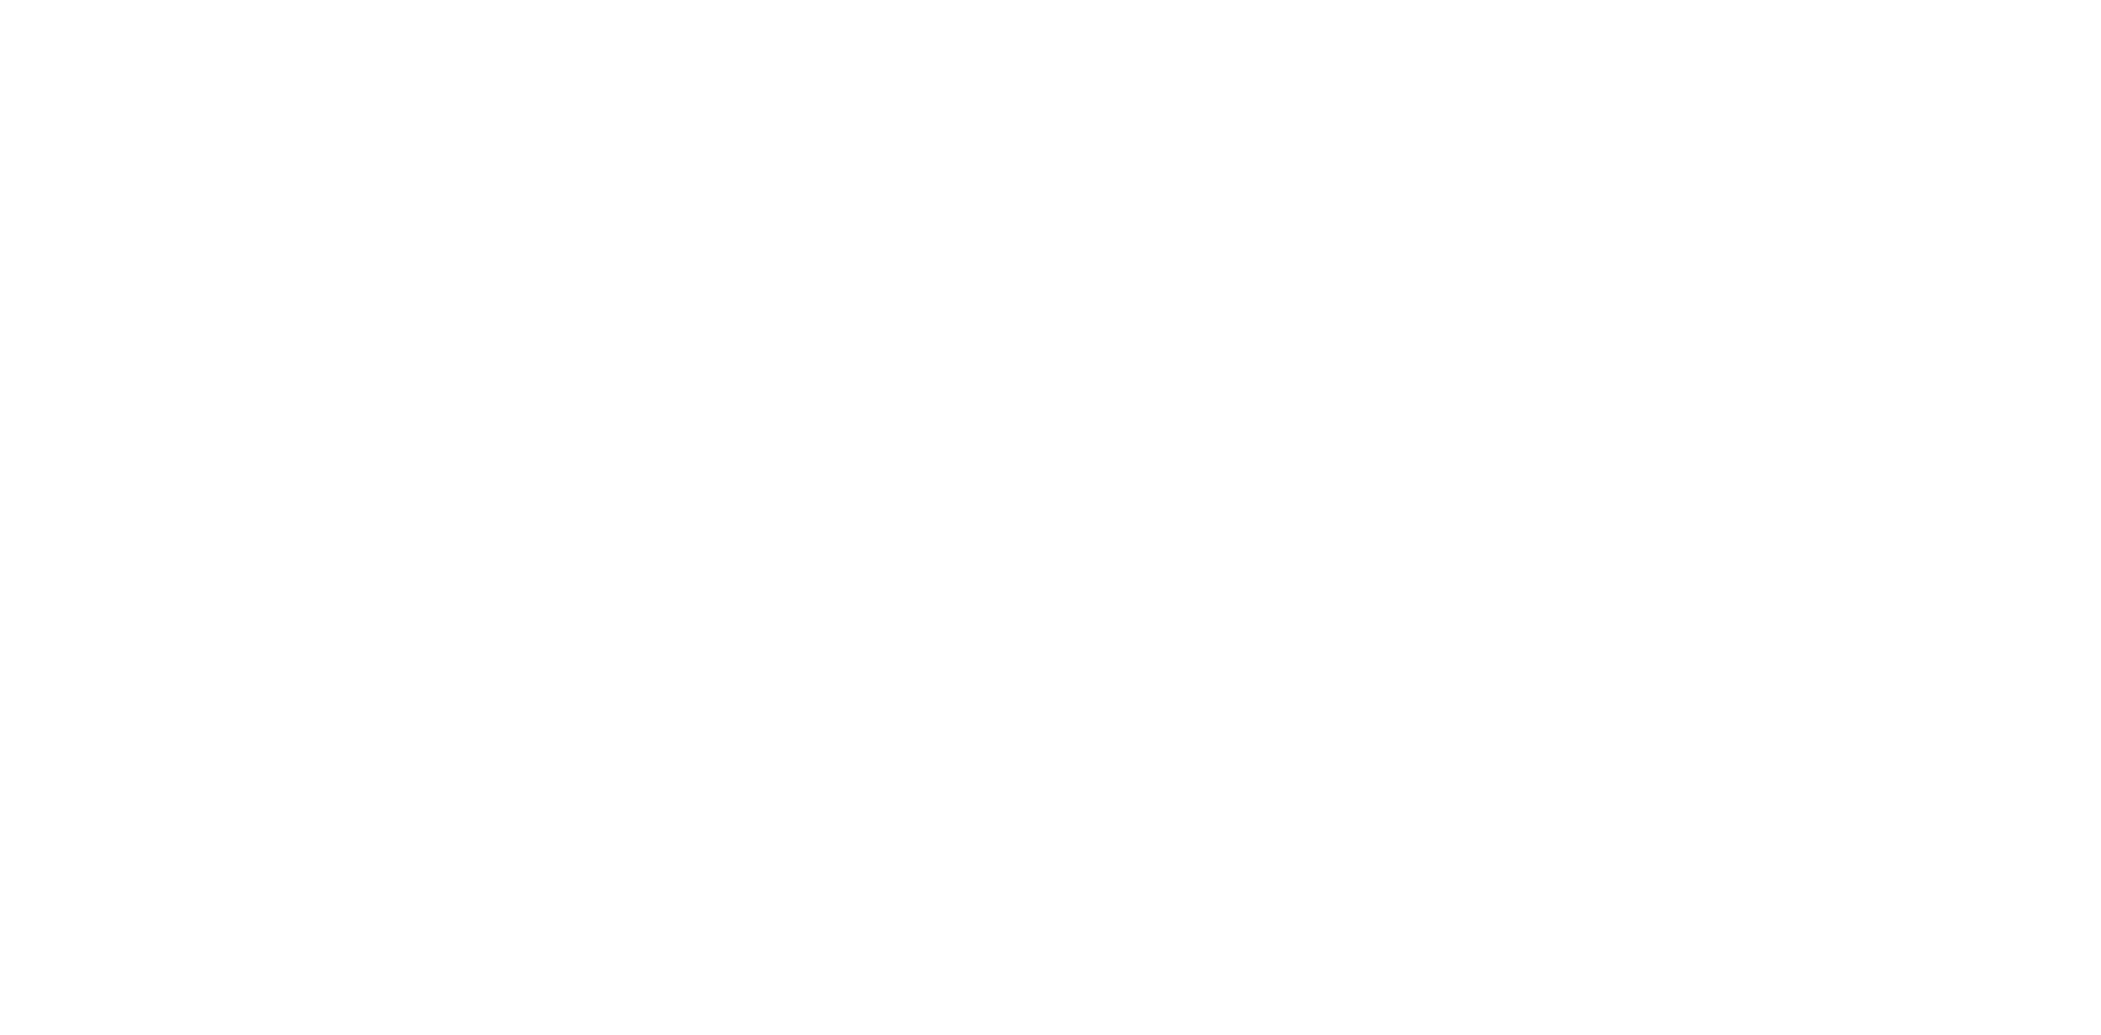 Surfrider Foundation Delaware